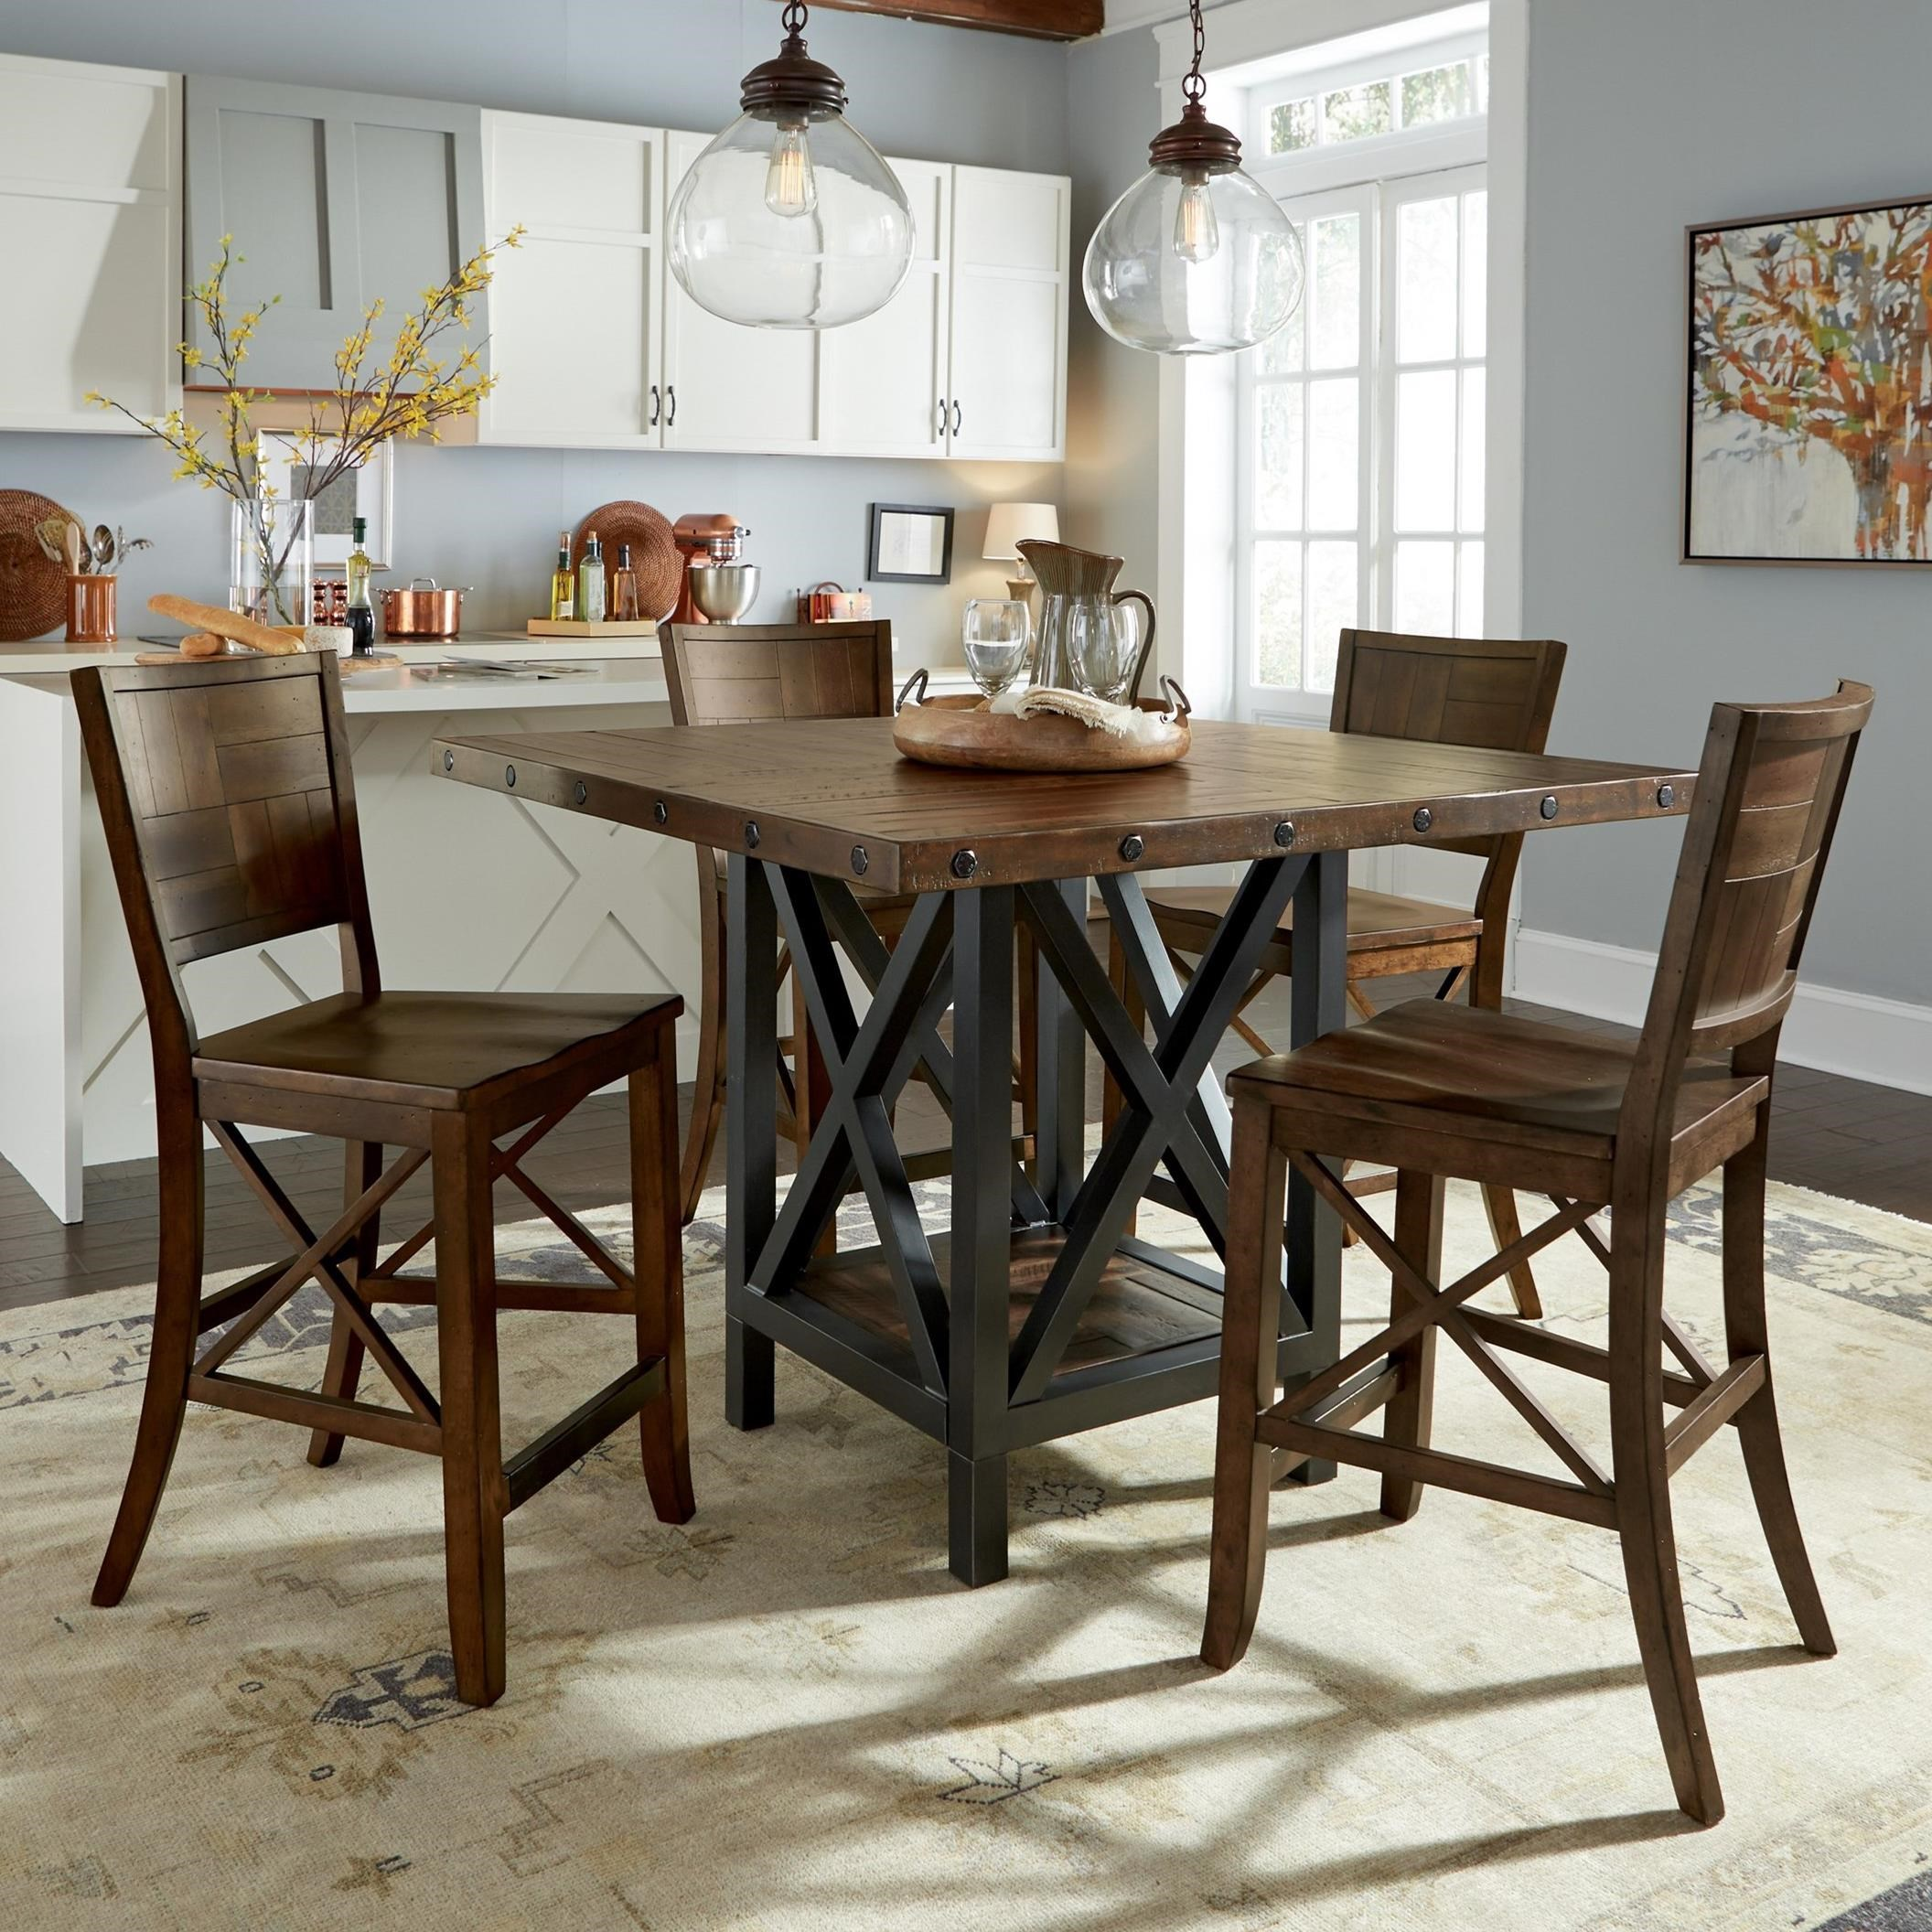 Flexsteel wynwood collection carpenter 5 piece counter for Tall breakfast table set